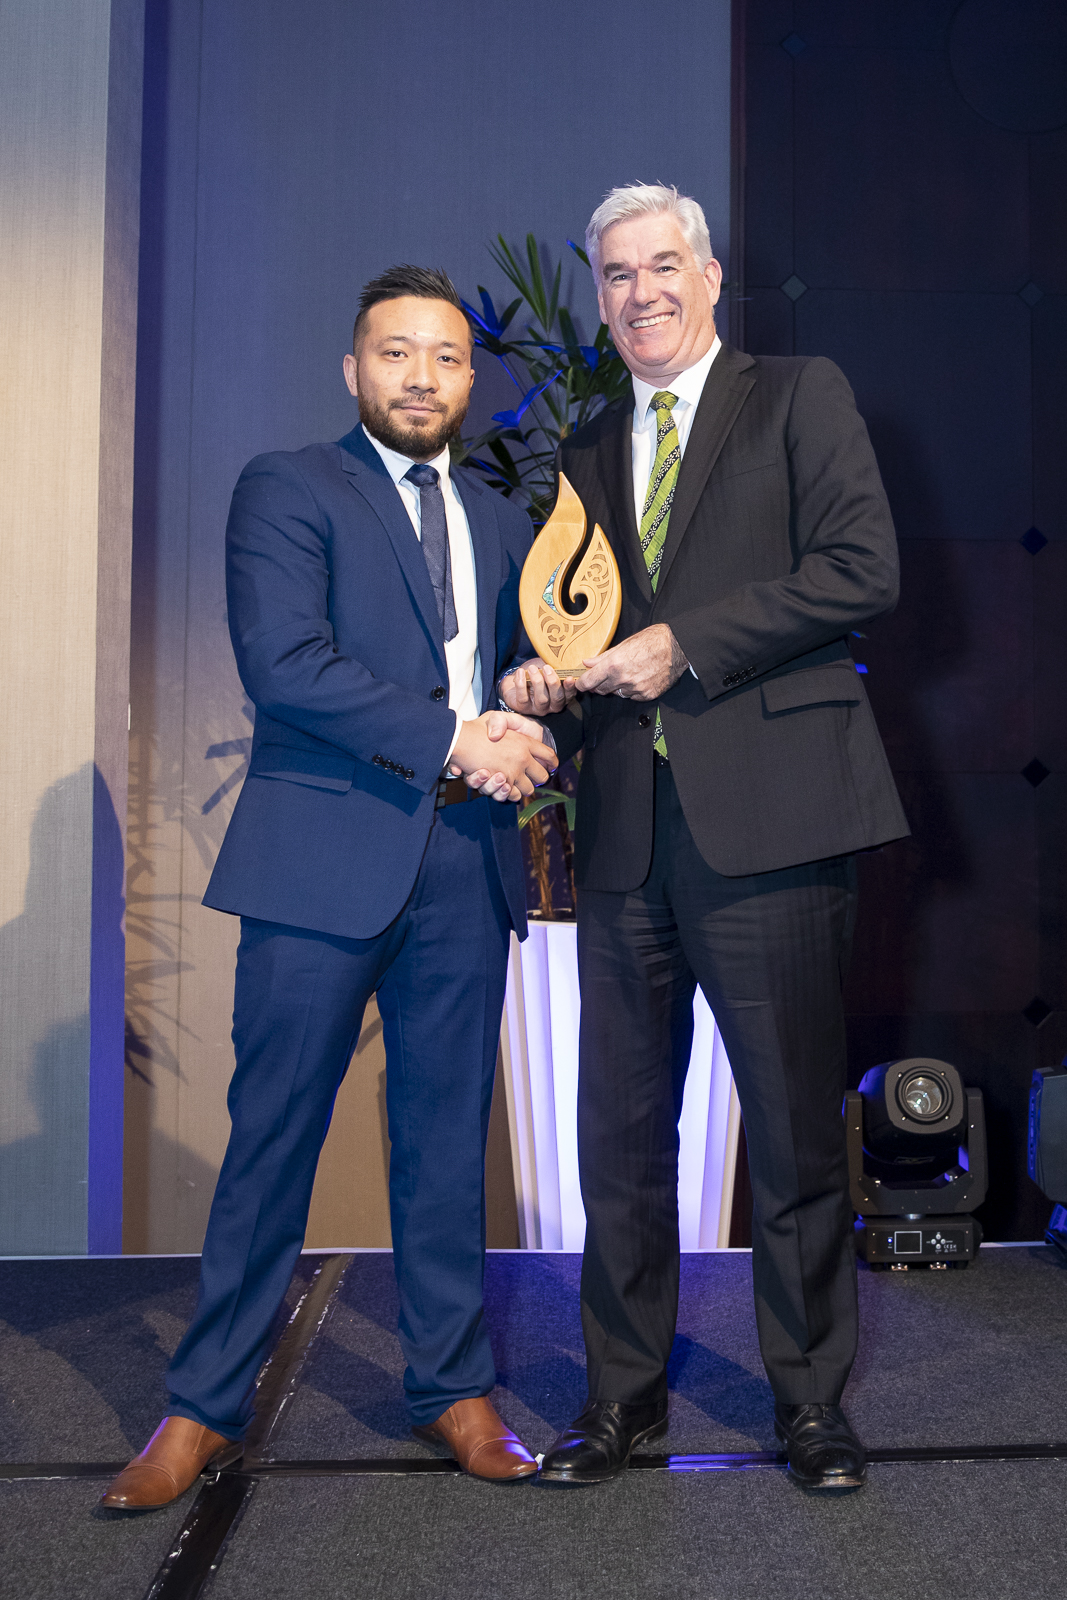 Shaun Maletino with Patrick Rennell (CEO of HLC) - Manpower Trainee of the year 2019